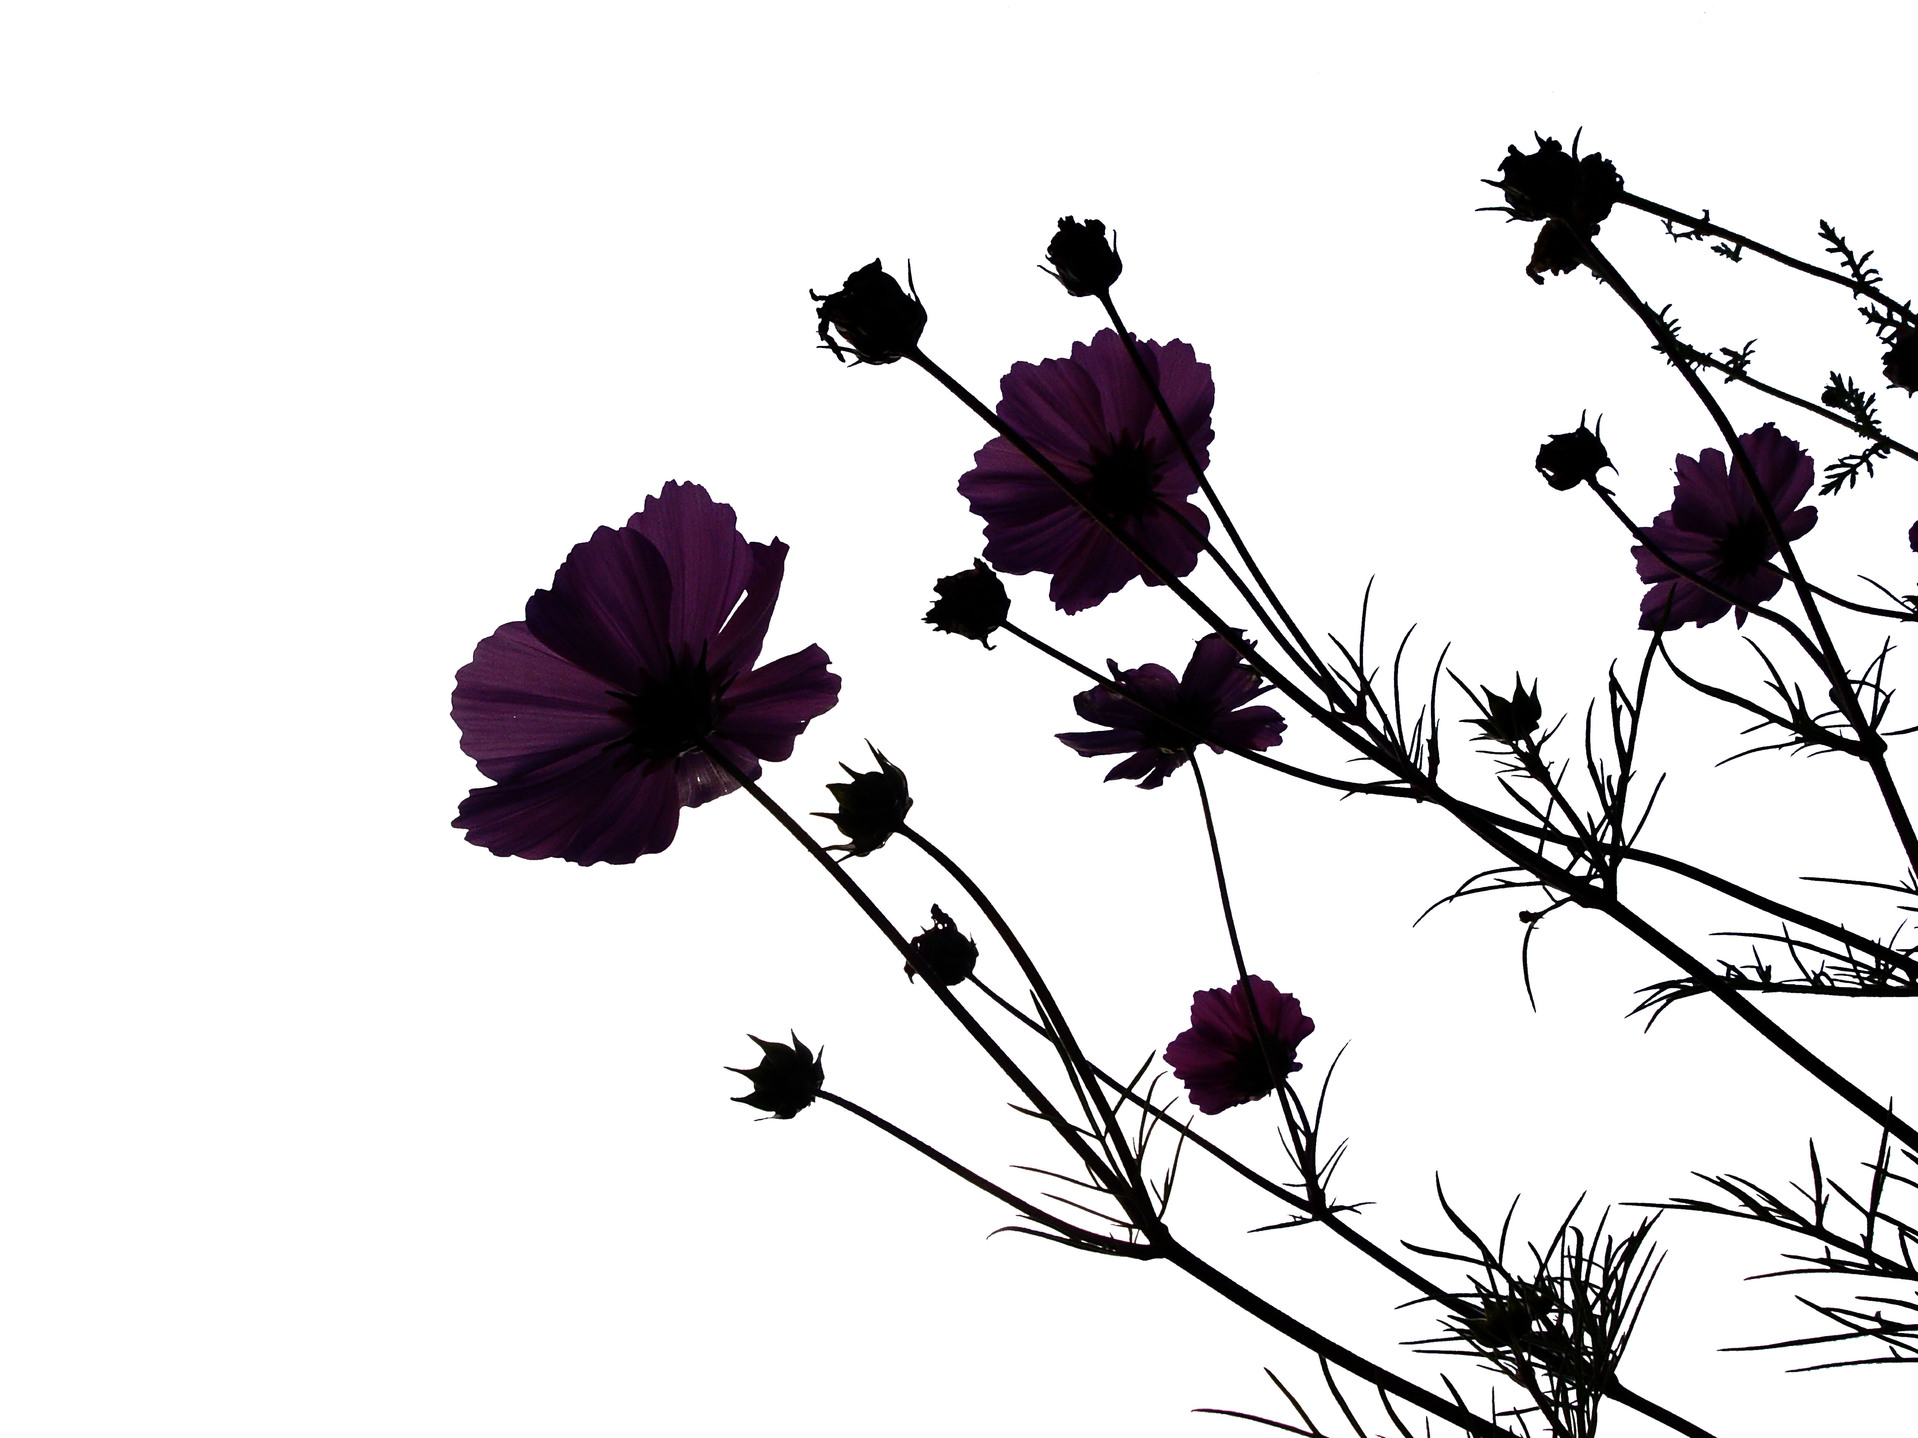 Black flowers are beautiful